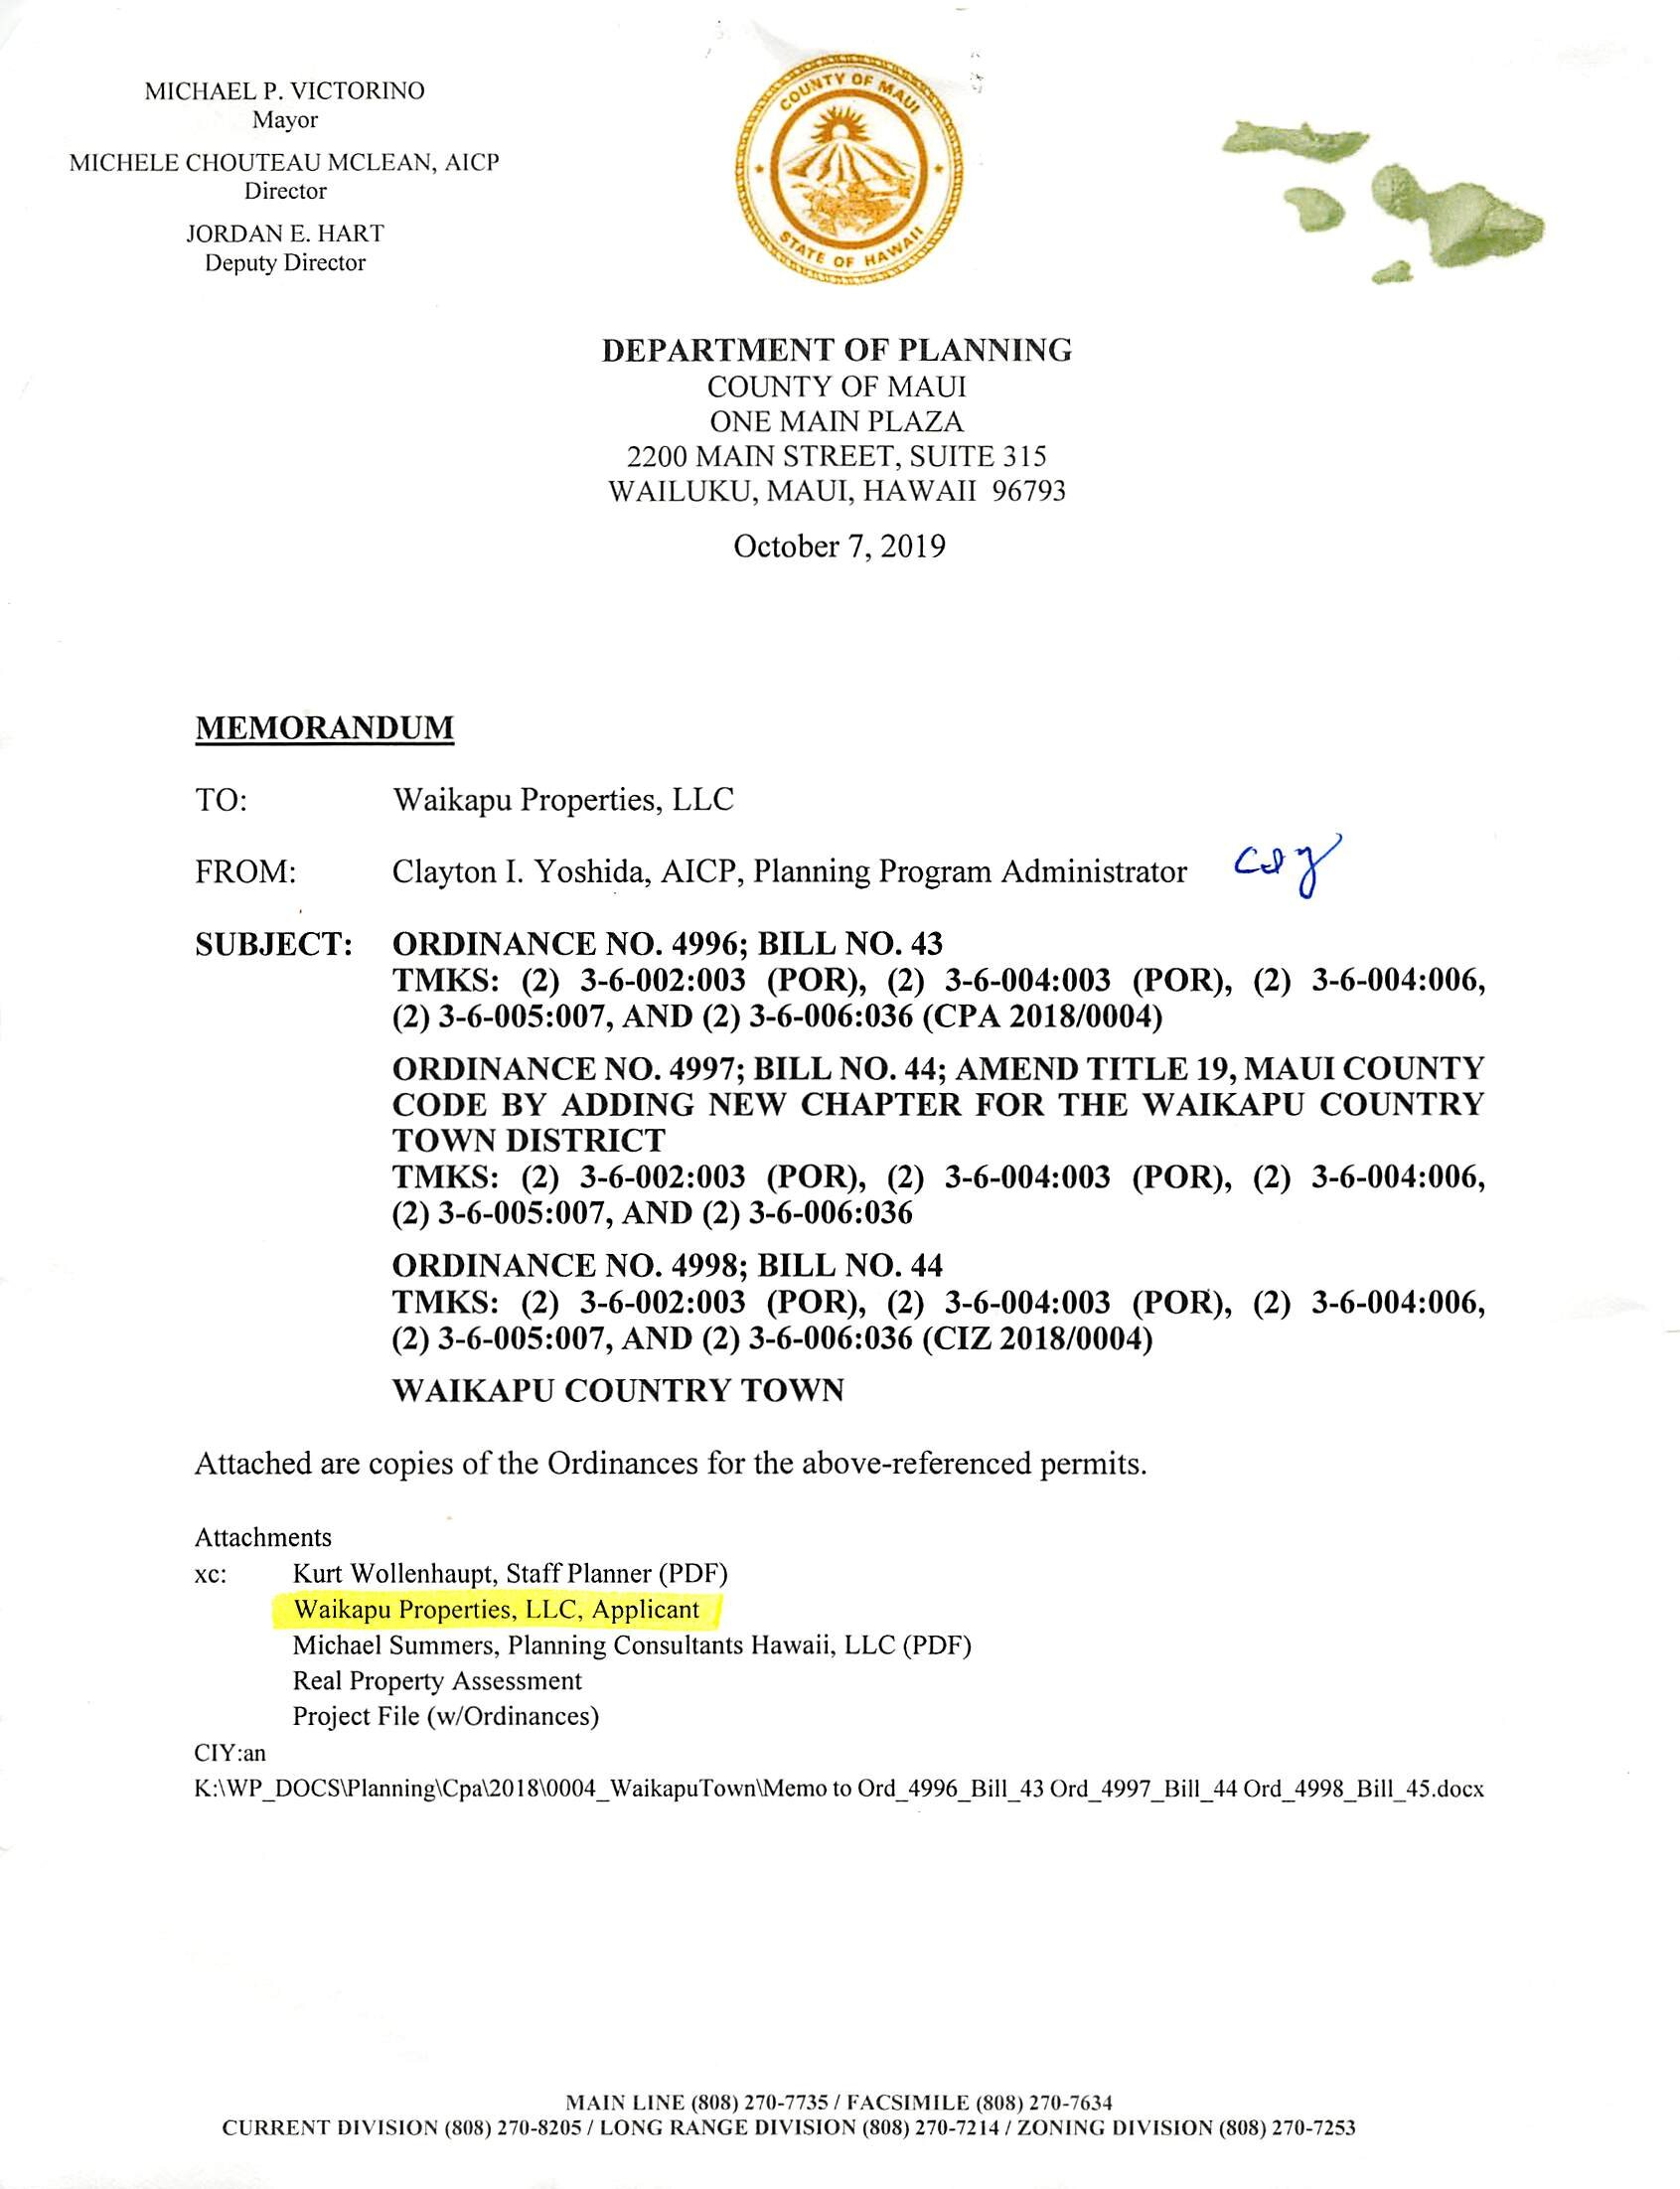 A Bill for an Ordinance to Amend Community Plan and Land Use Map - October 2019